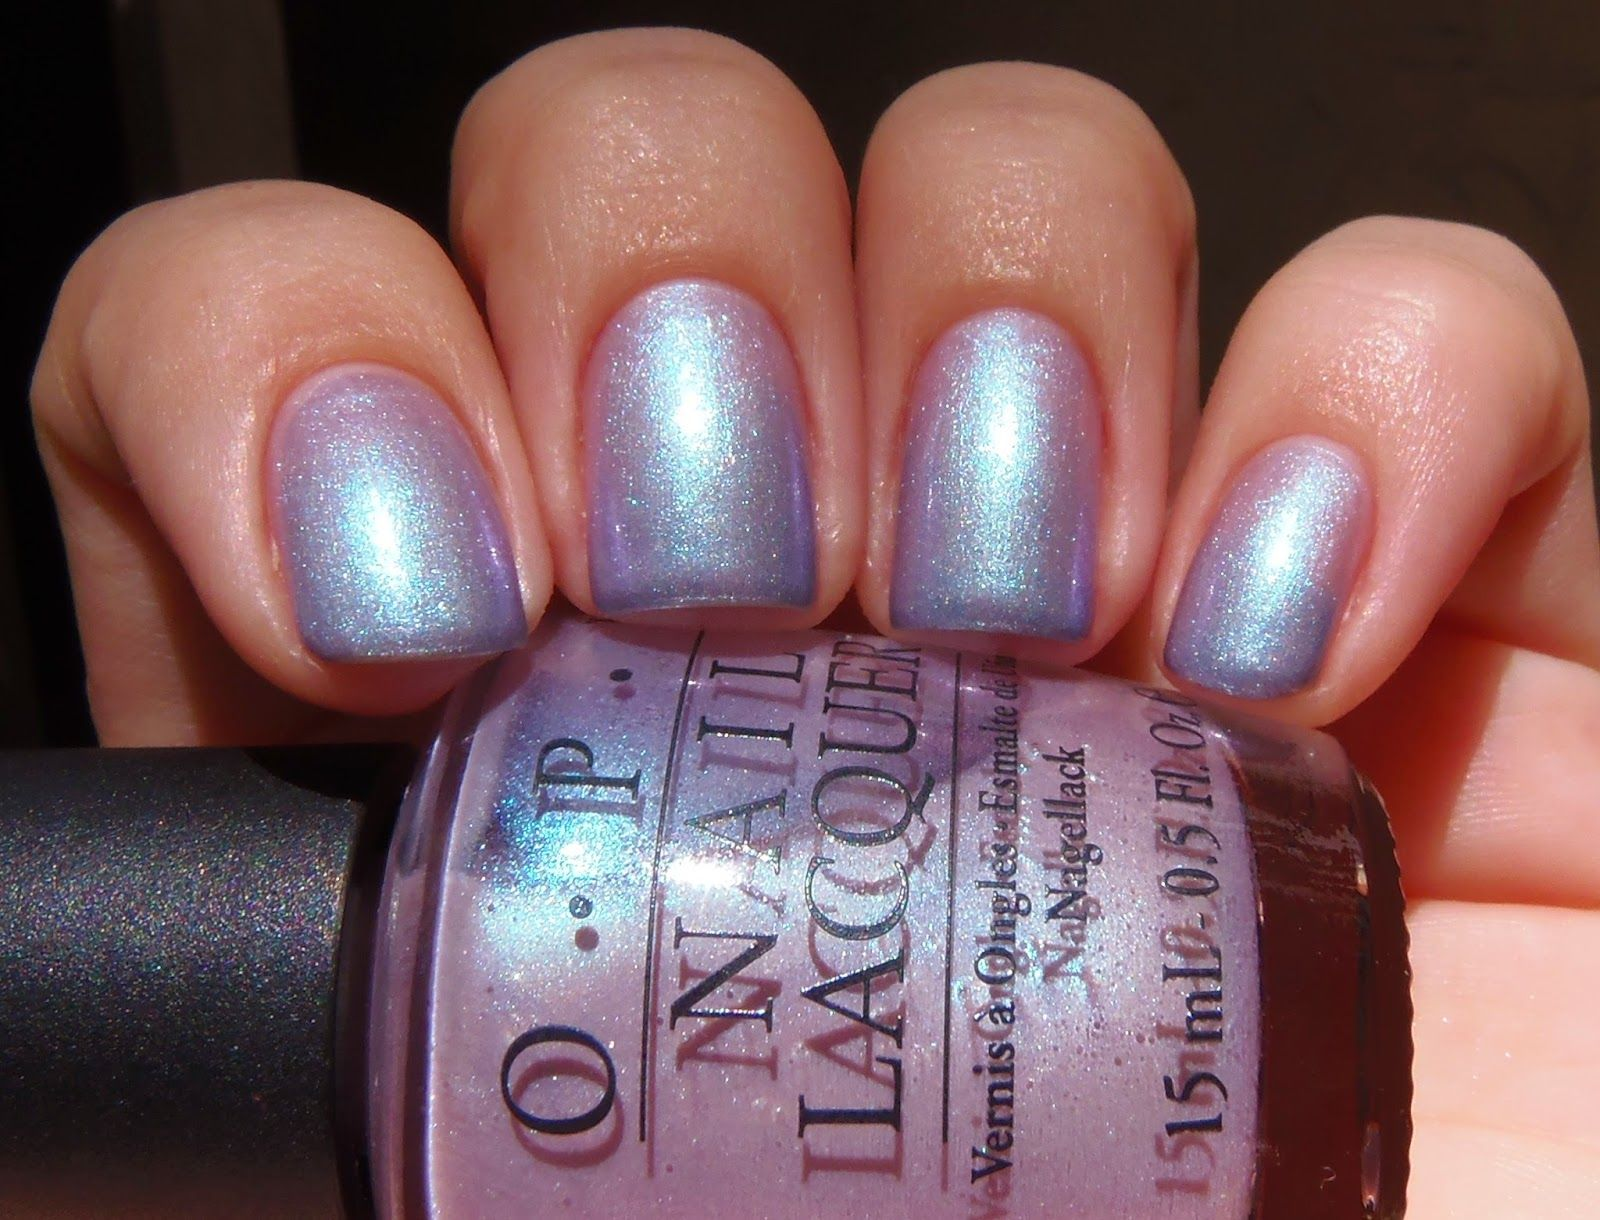 Opi Yokohama Twilight Is A Sheer Light Pink With Blue